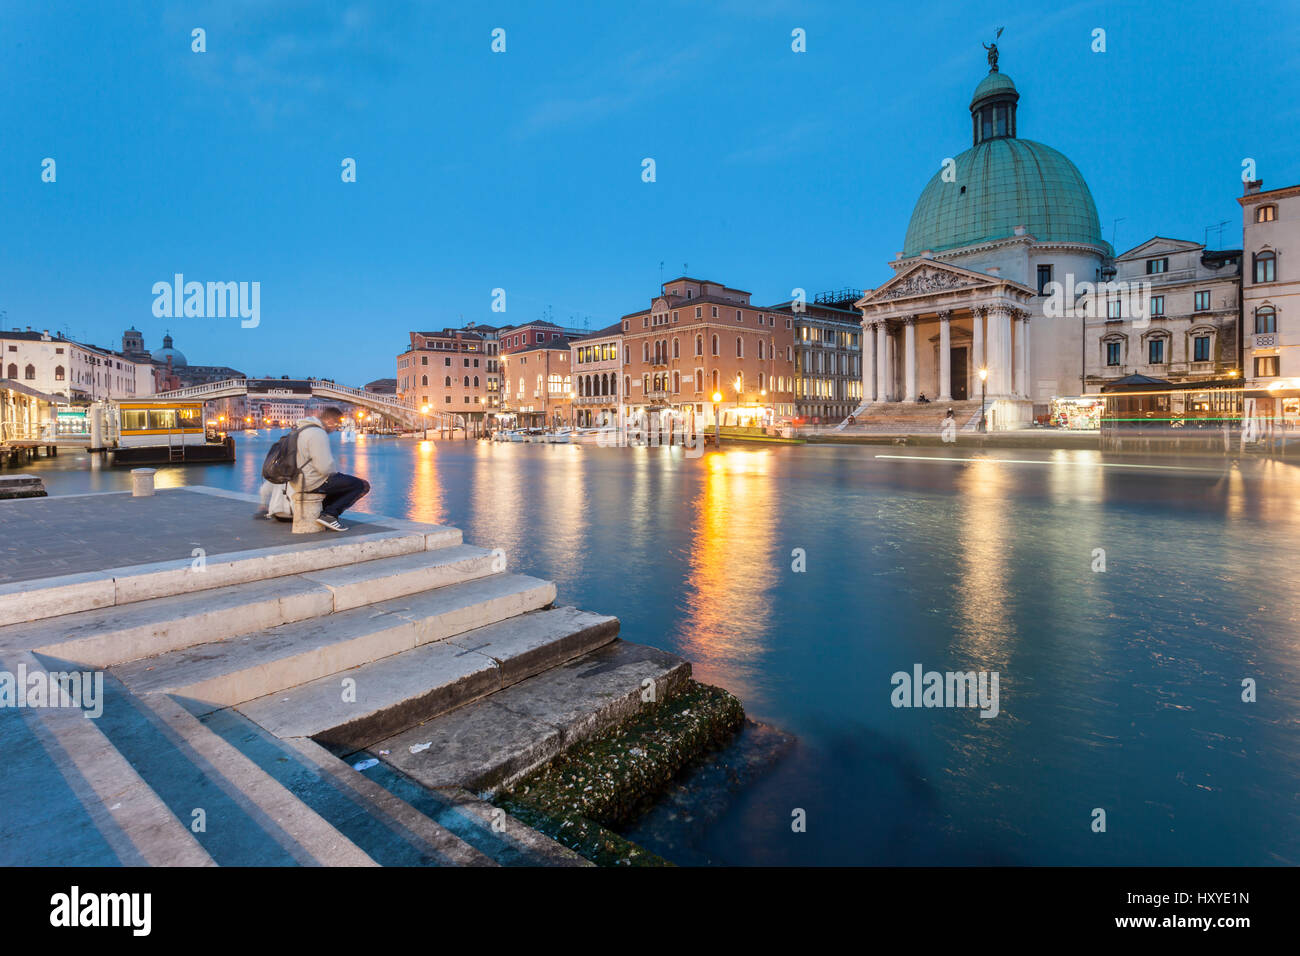 Night falls on Grand Canal in Venice, Italy. Iconic dome of San Simeone Piccolo. - Stock Image